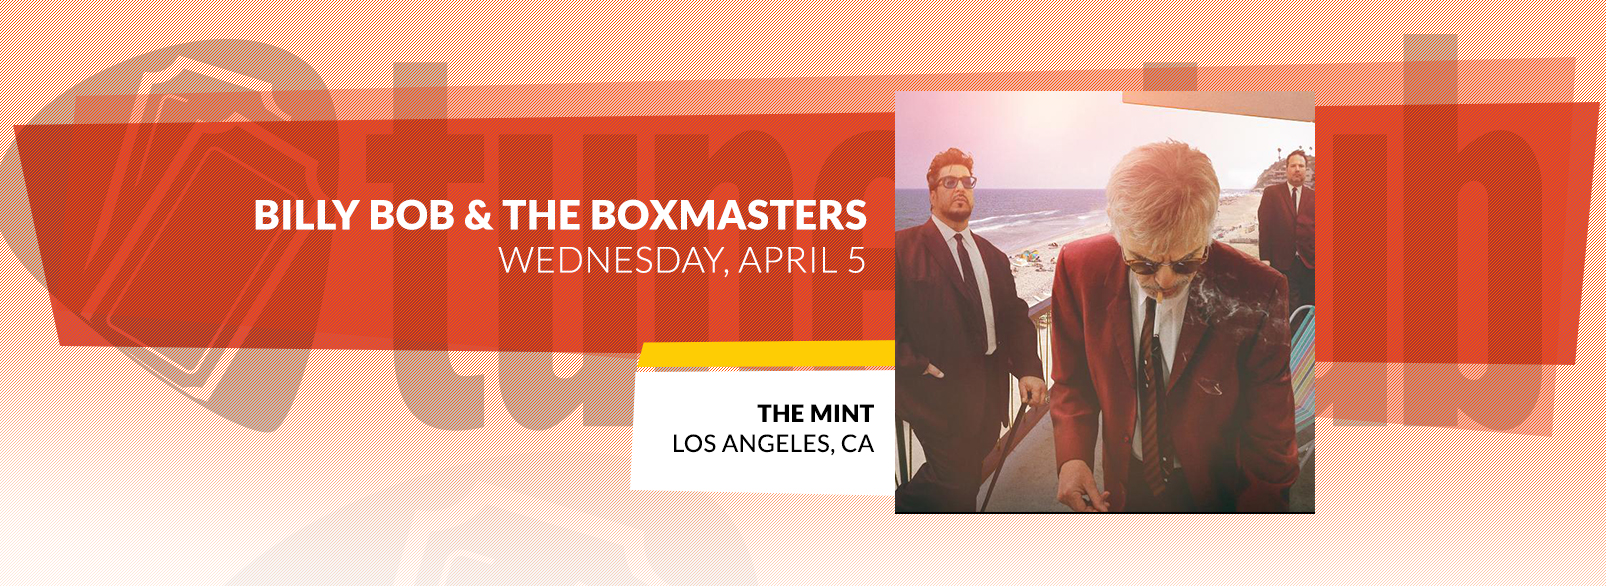 Billy Bob & The Boxmasters @ The Mint